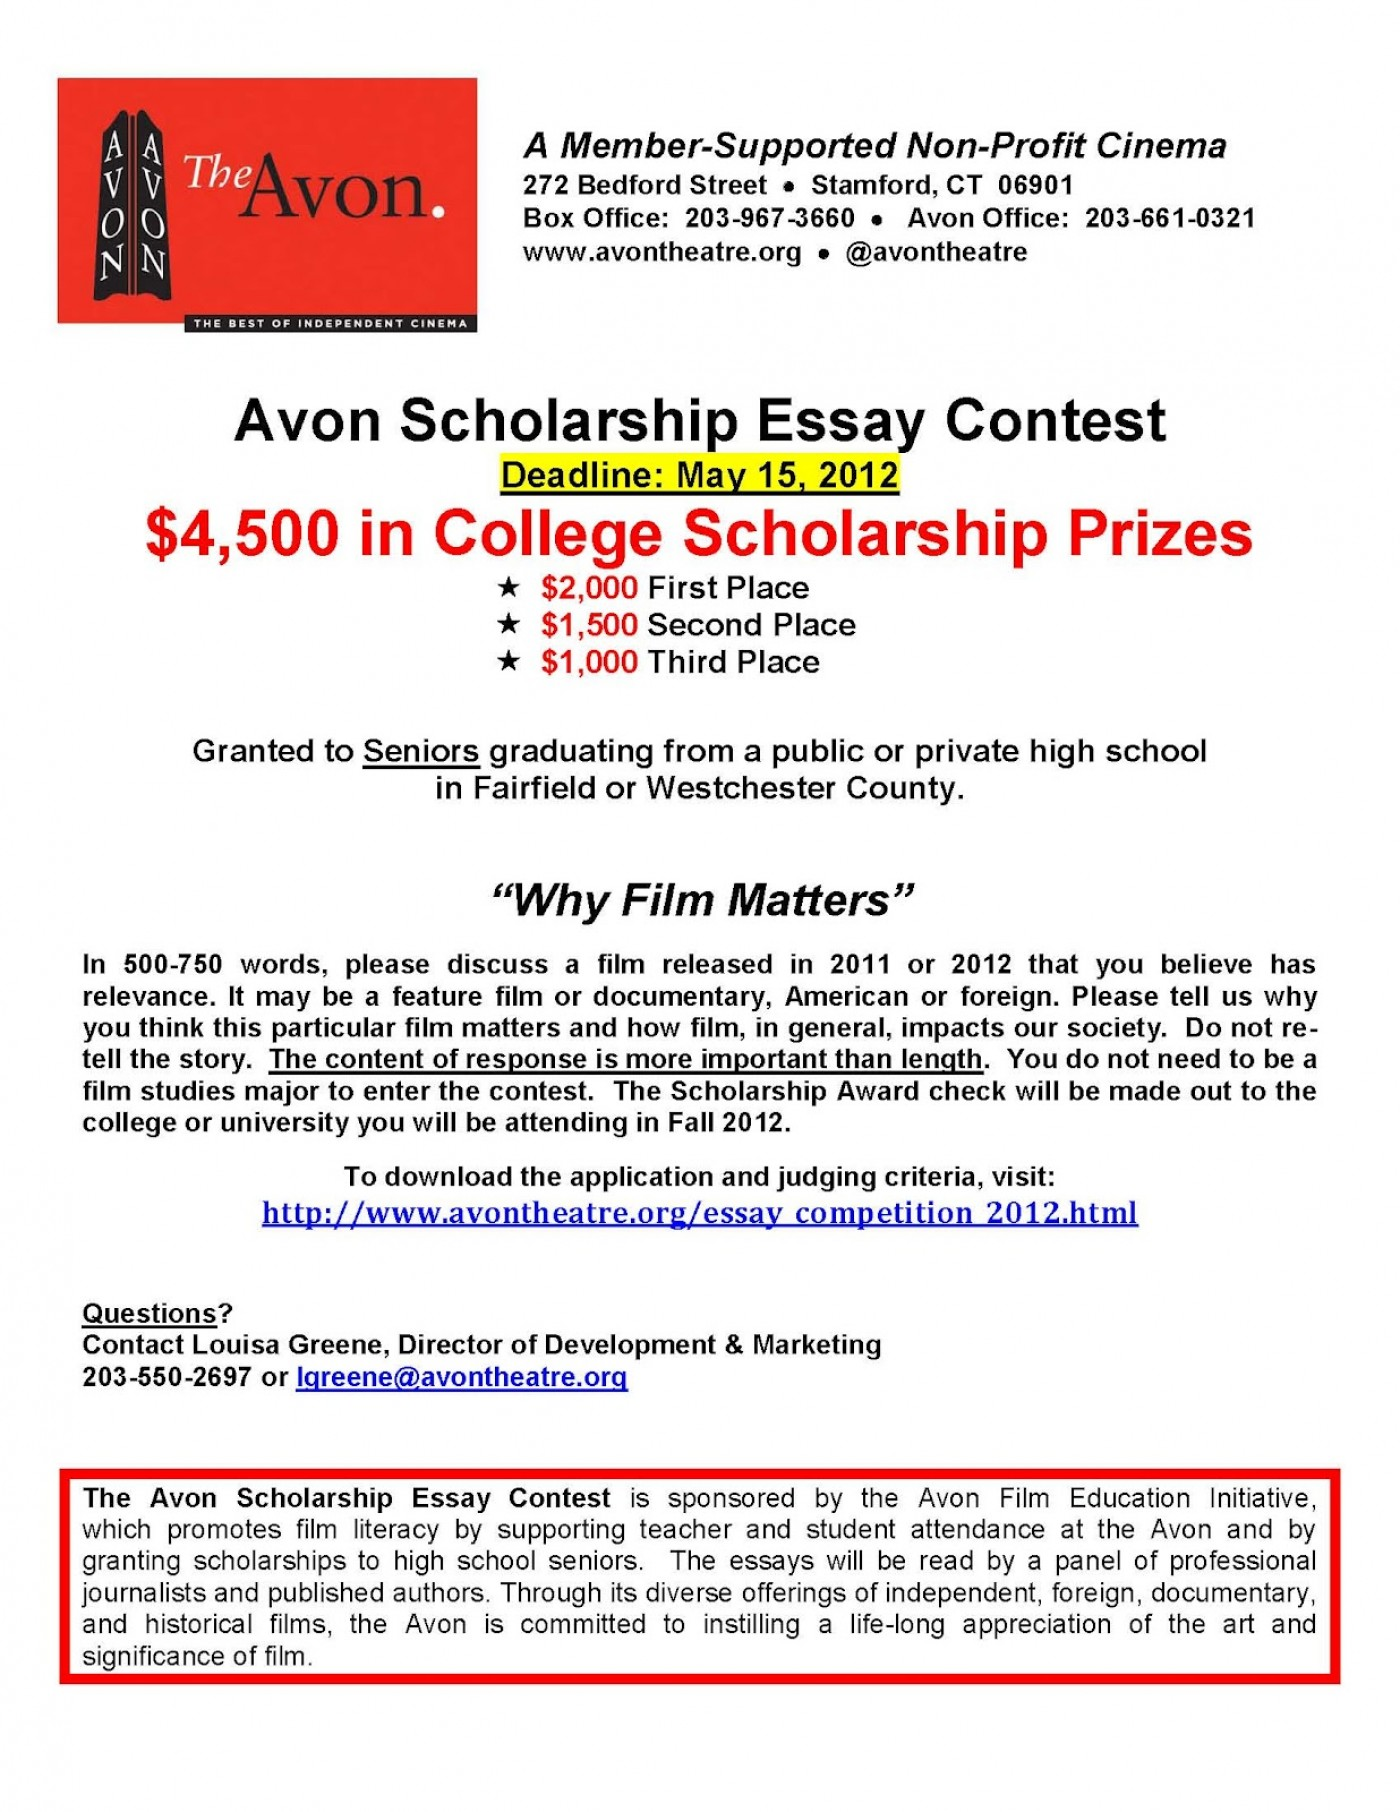 002 No Essay Collegeip Prowler Freeips For High School Seniors Avonscholarshipessaycontest2012 In Texas California Class Of Short Example Wondrous Scholarship Scholarships Freshman 2019 1400